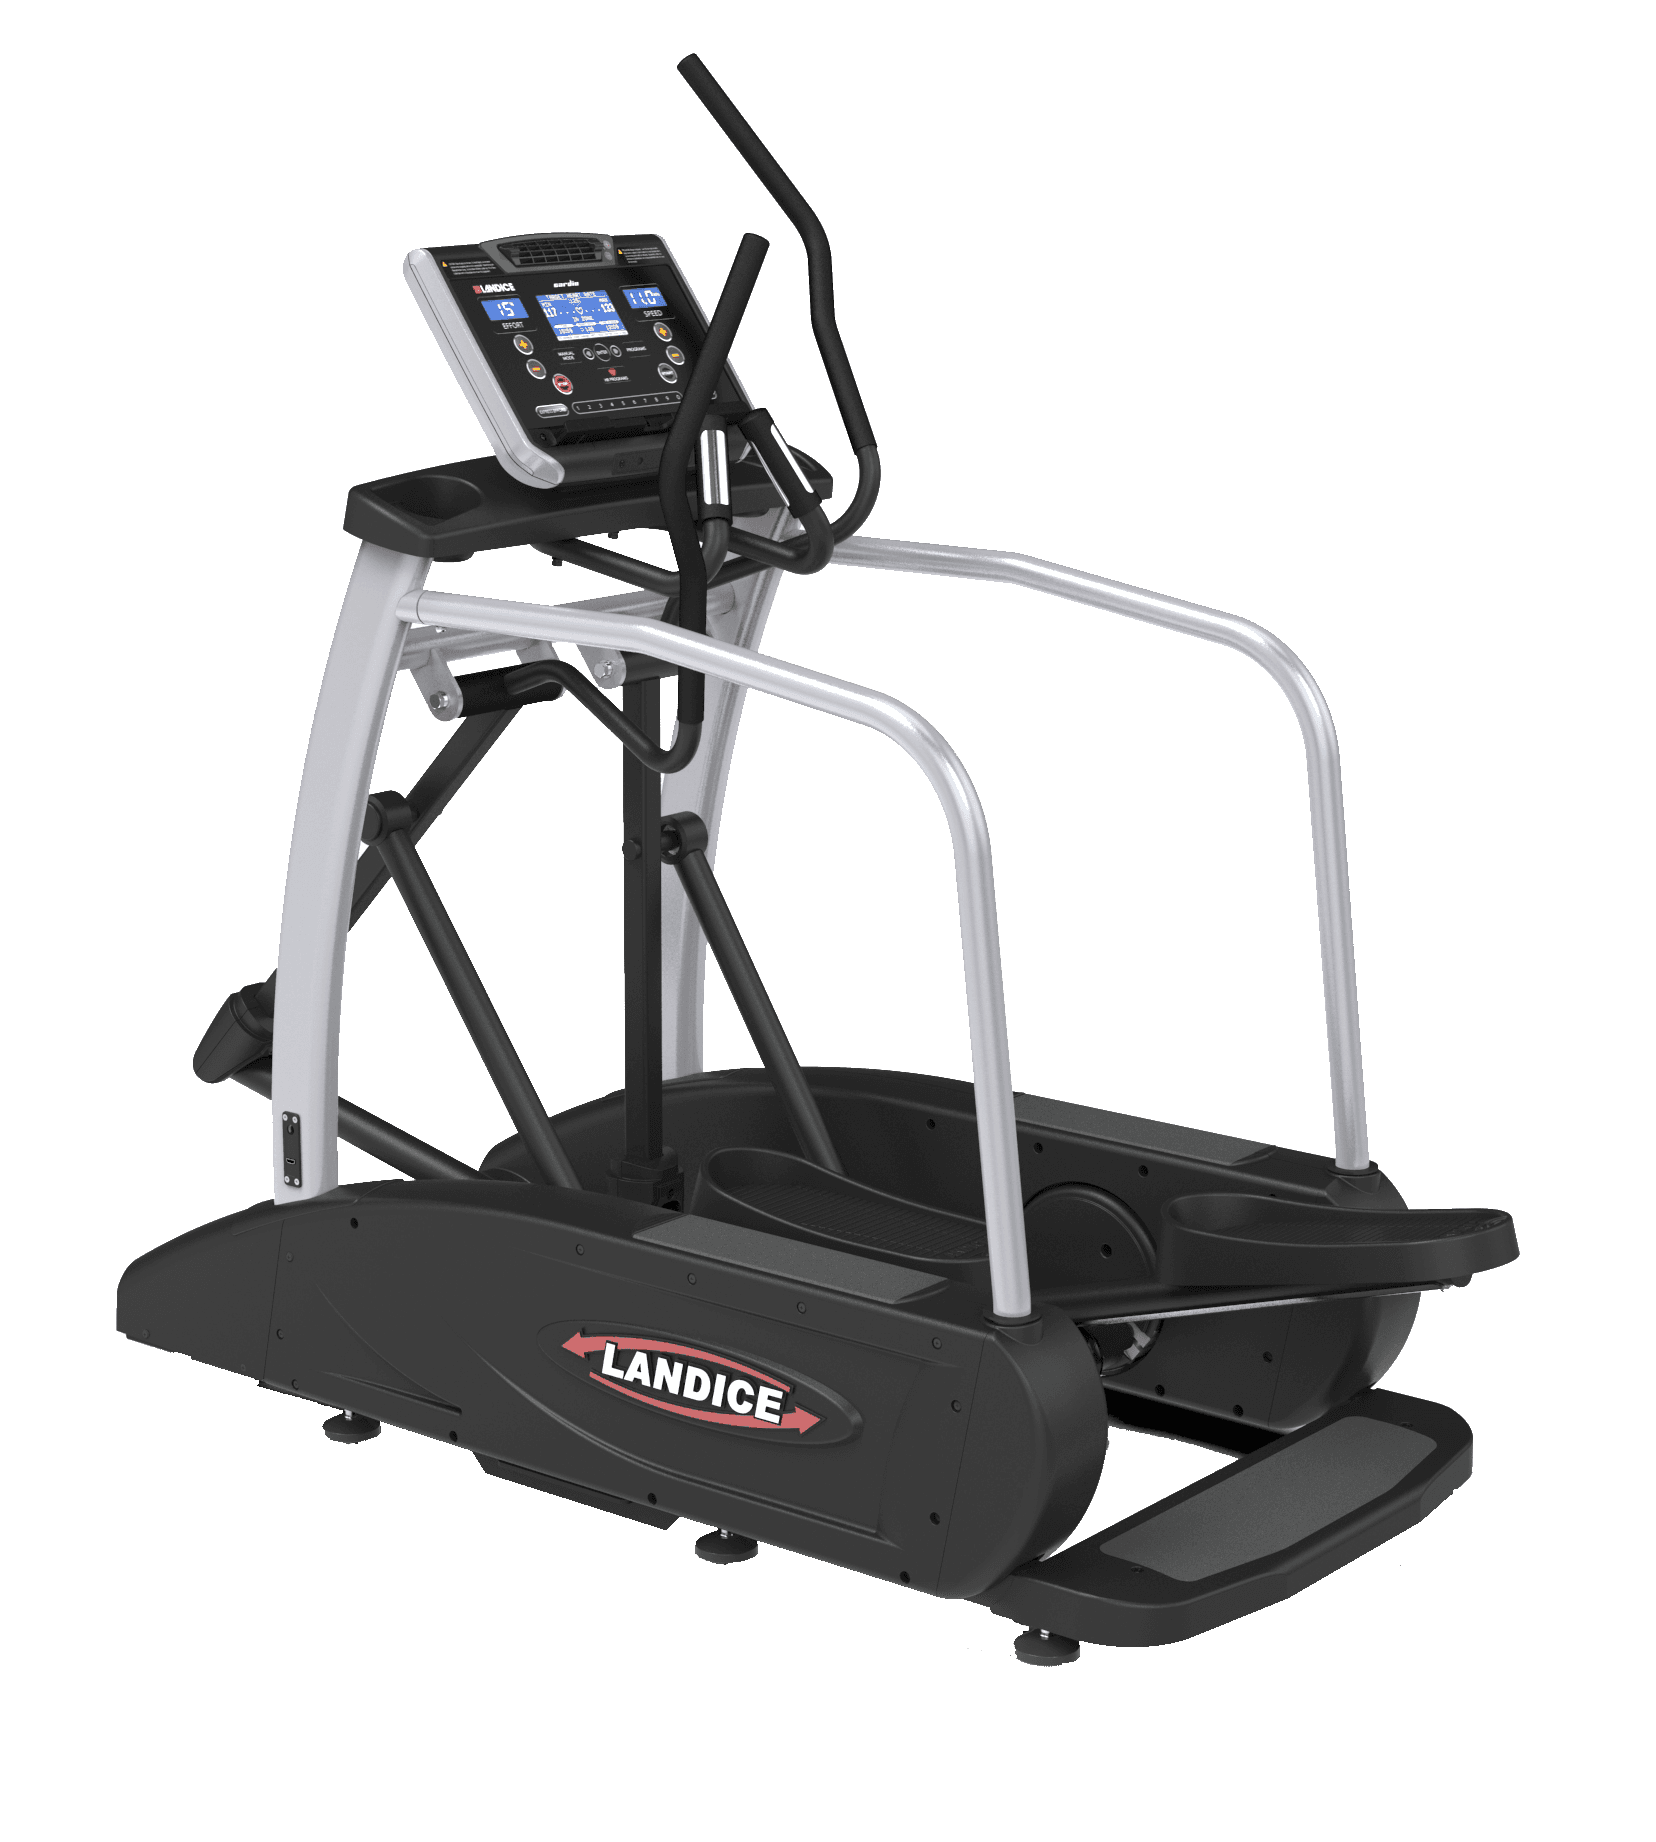 Life Fitness Treadmill Replace Emergency Stop Switch: EllipticalReviews.com